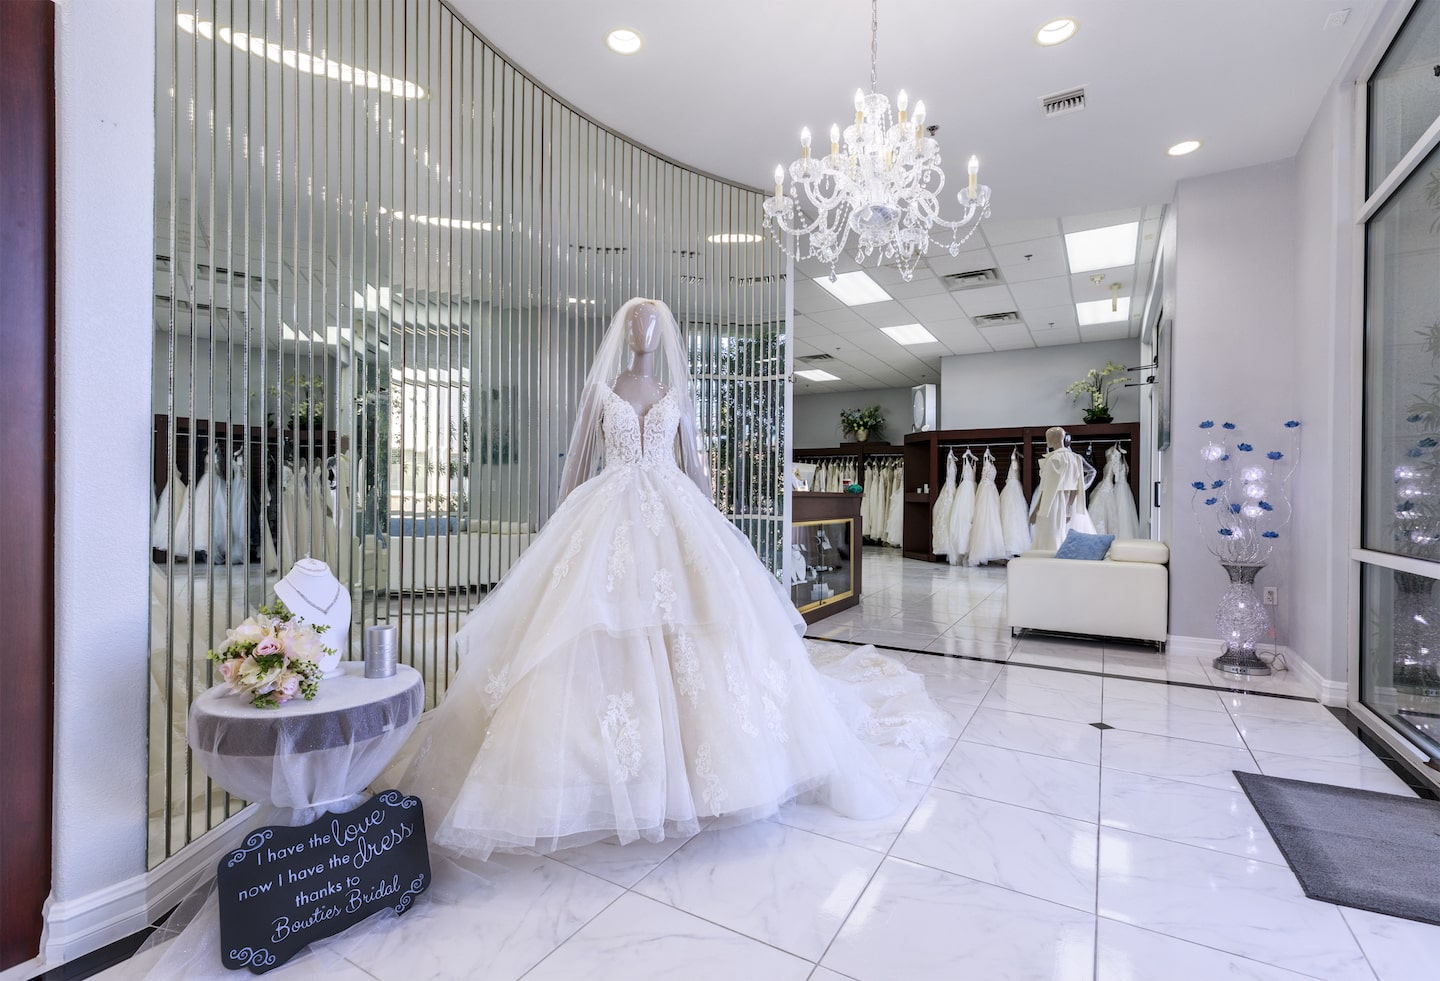 We will help you find the perfect dress, guaranteed.